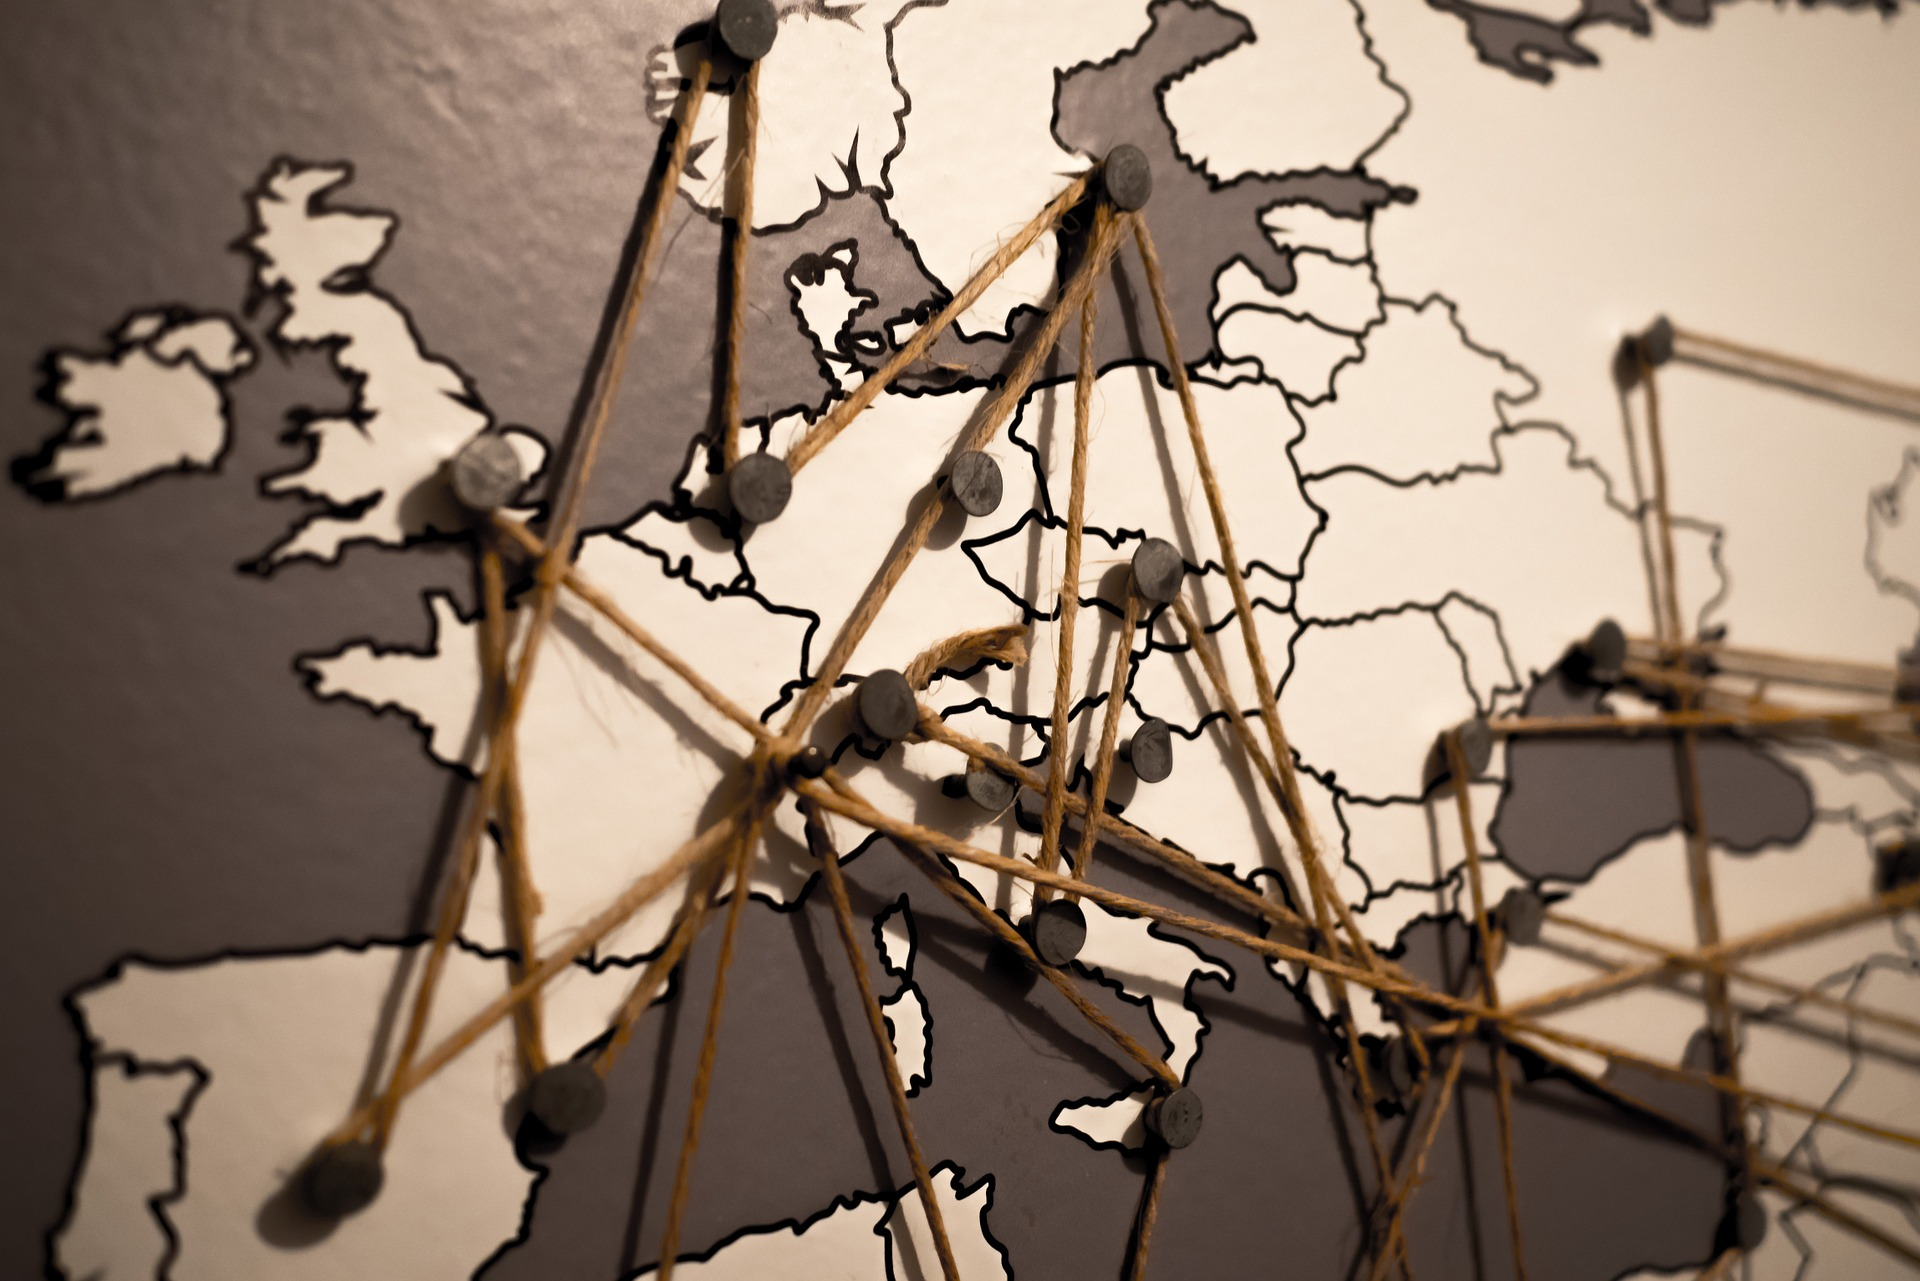 Search Our Network   Being a part of the Association provides you access to an instant network of other highly-qualified professionals around the world who are also working against corruption.  By sharing our knowledge and combining resources into one professional organization we are able to leverage our communal experience and advocate for the issues that matter most.